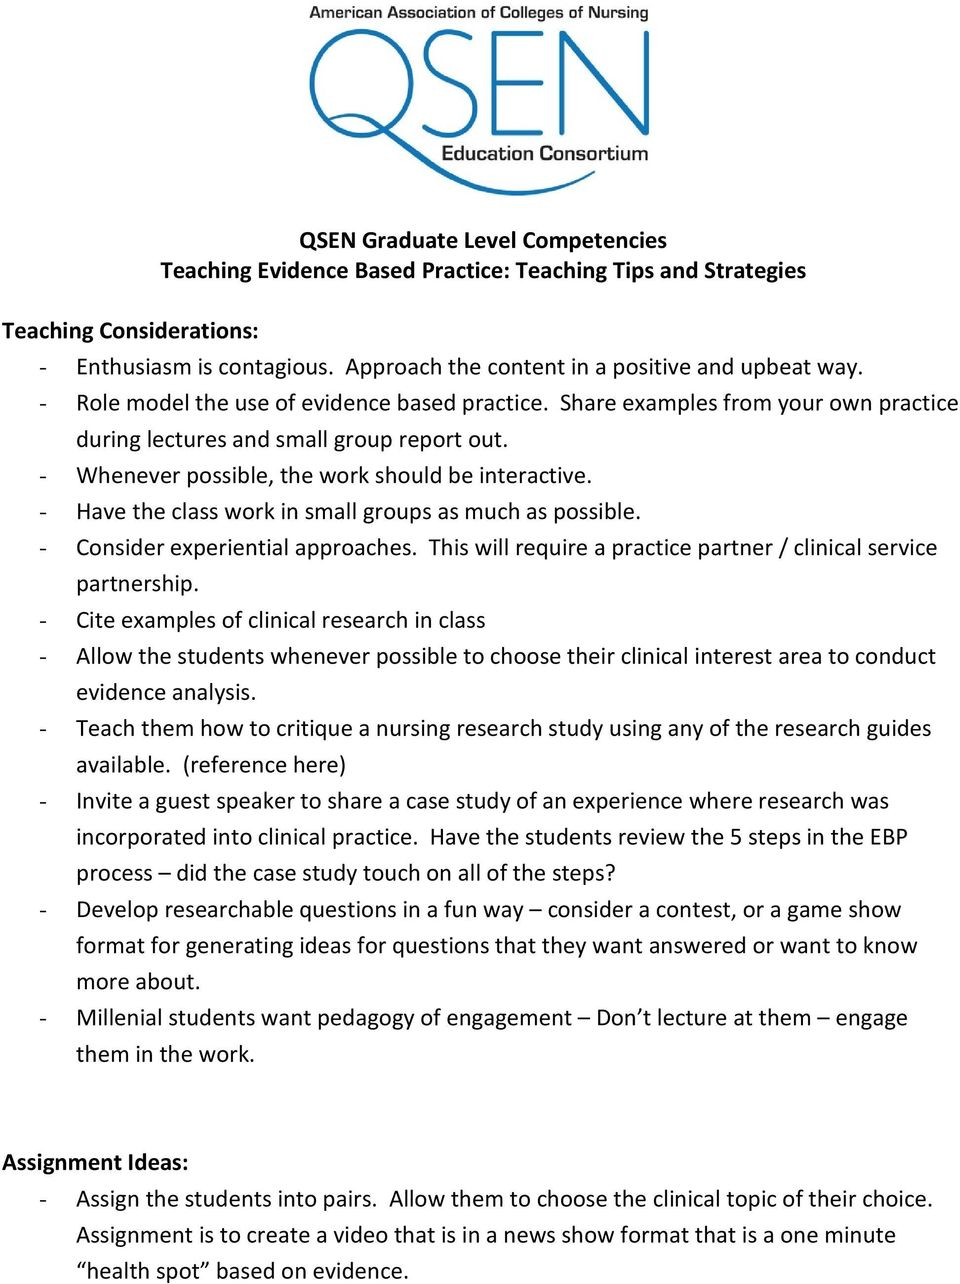 QSEN Evidence-Based Practice Competency - PDF